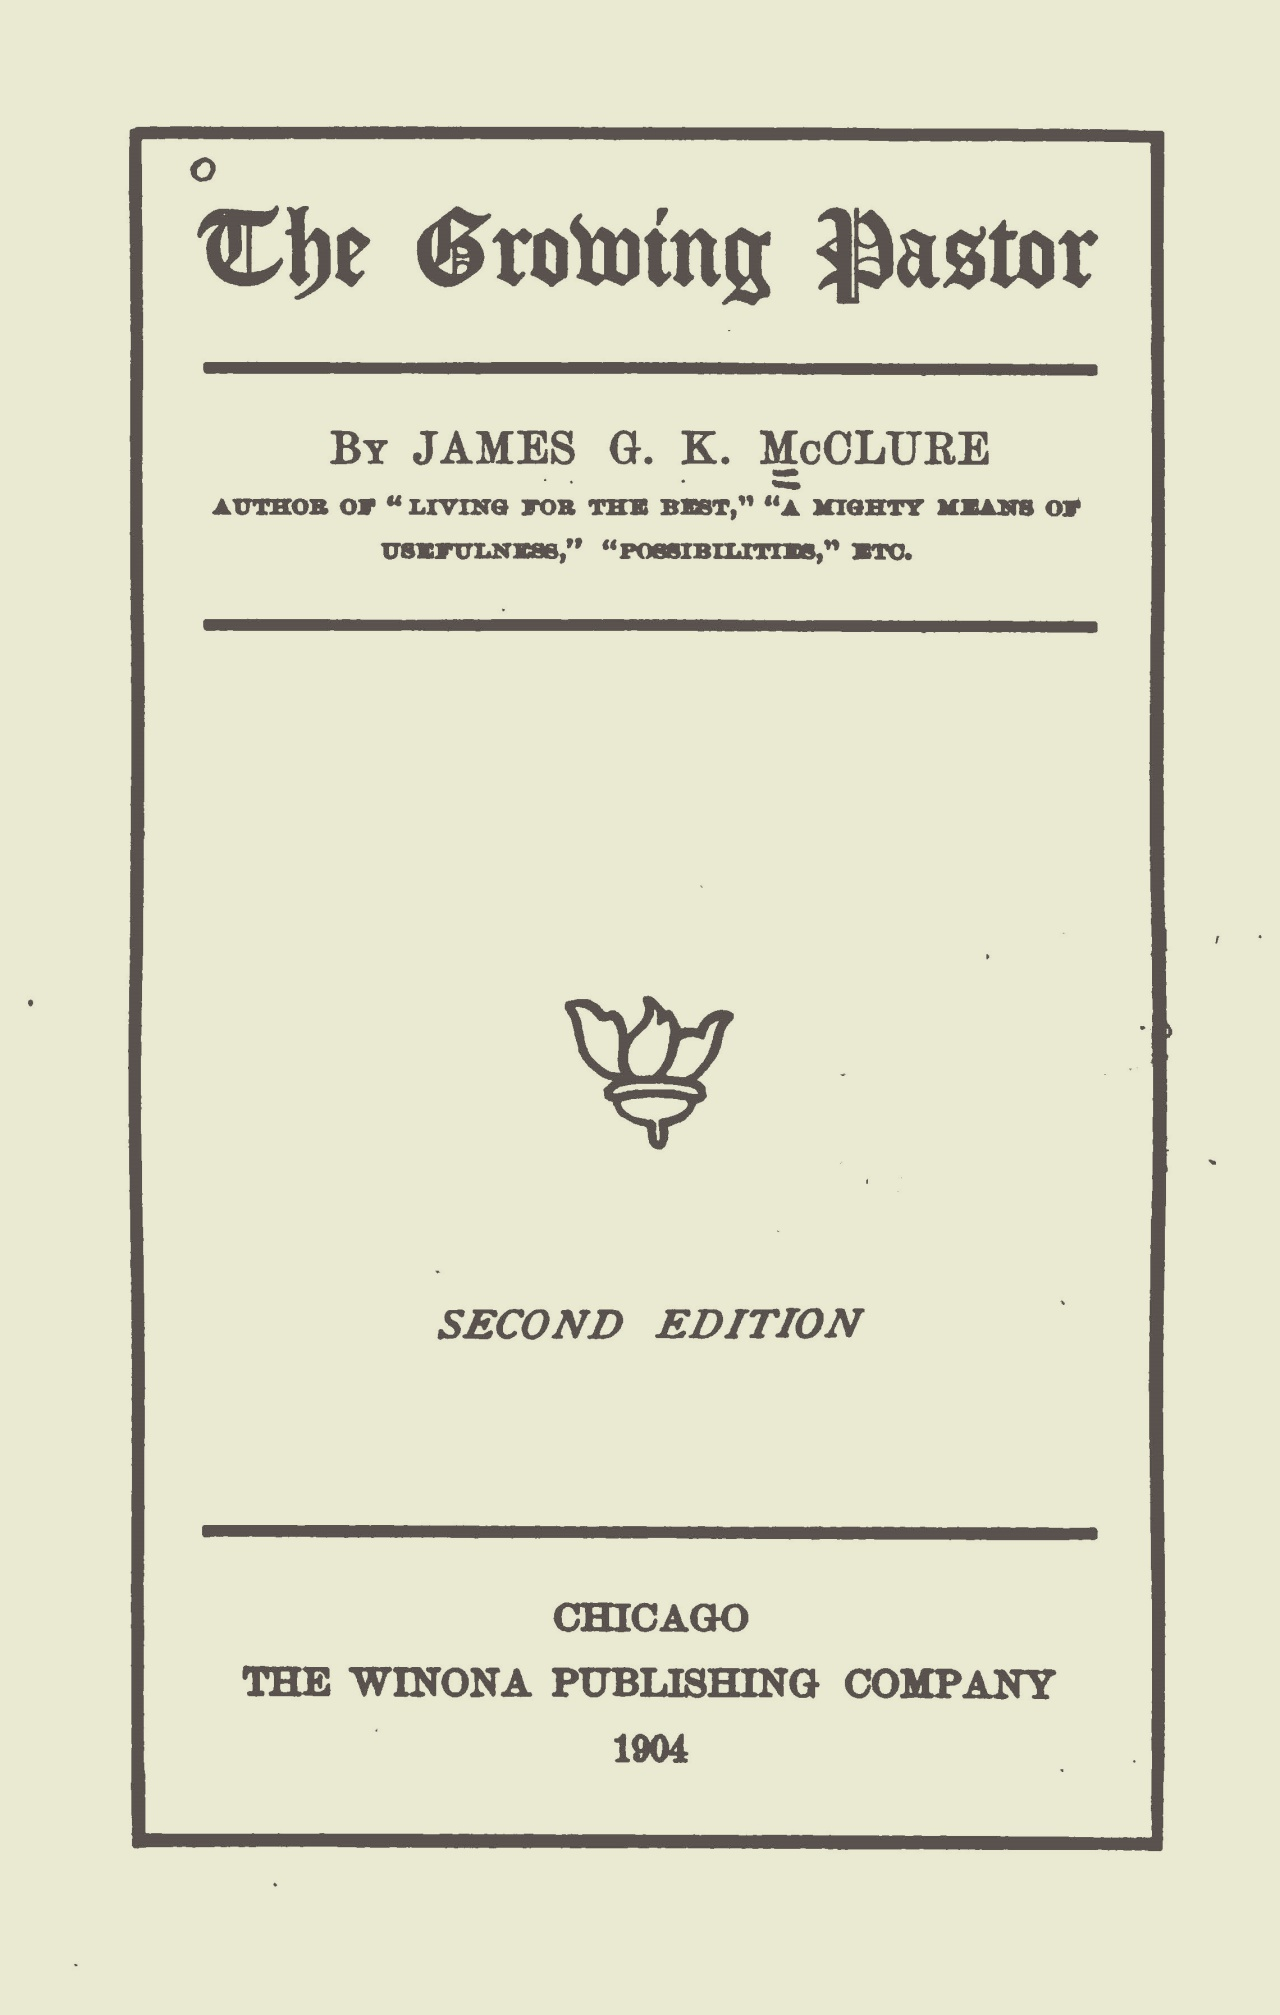 McClure, Sr., James Gore King, The Growing Pastor Title Page.jpg